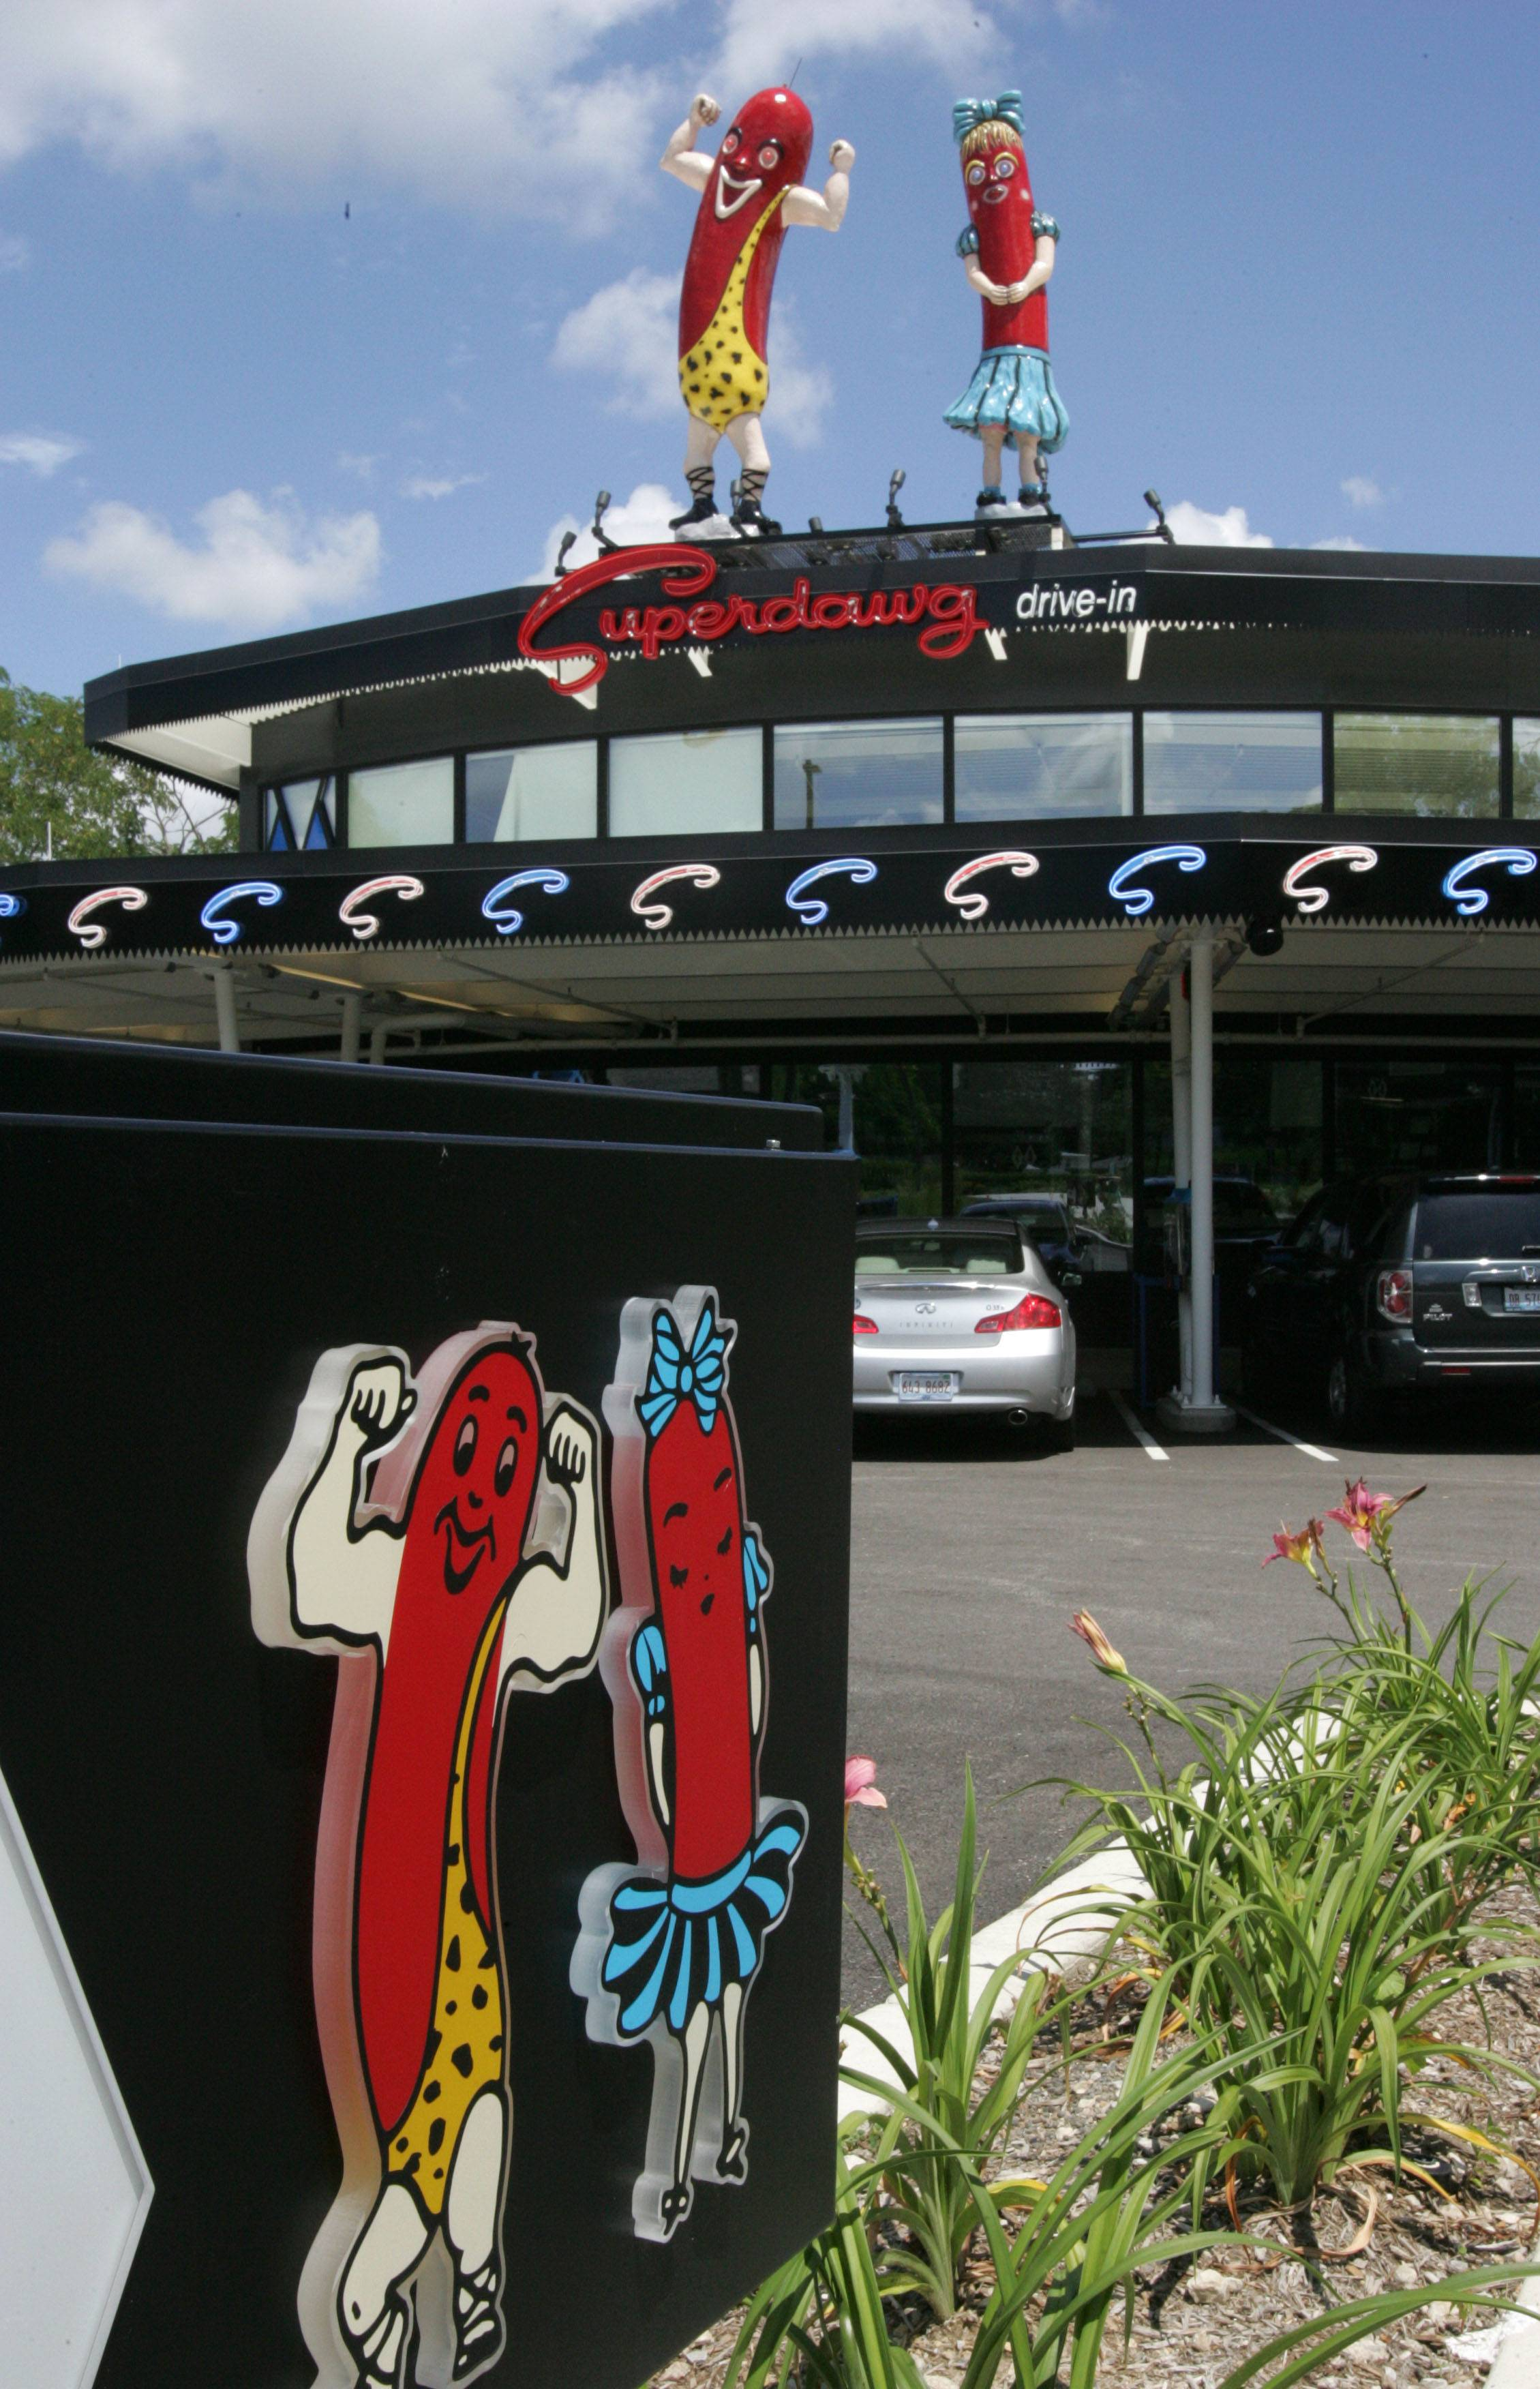 Superdawg in Wheeling will have a free tasting Thursday night of a special beer brewed to pair with its famous dogs.